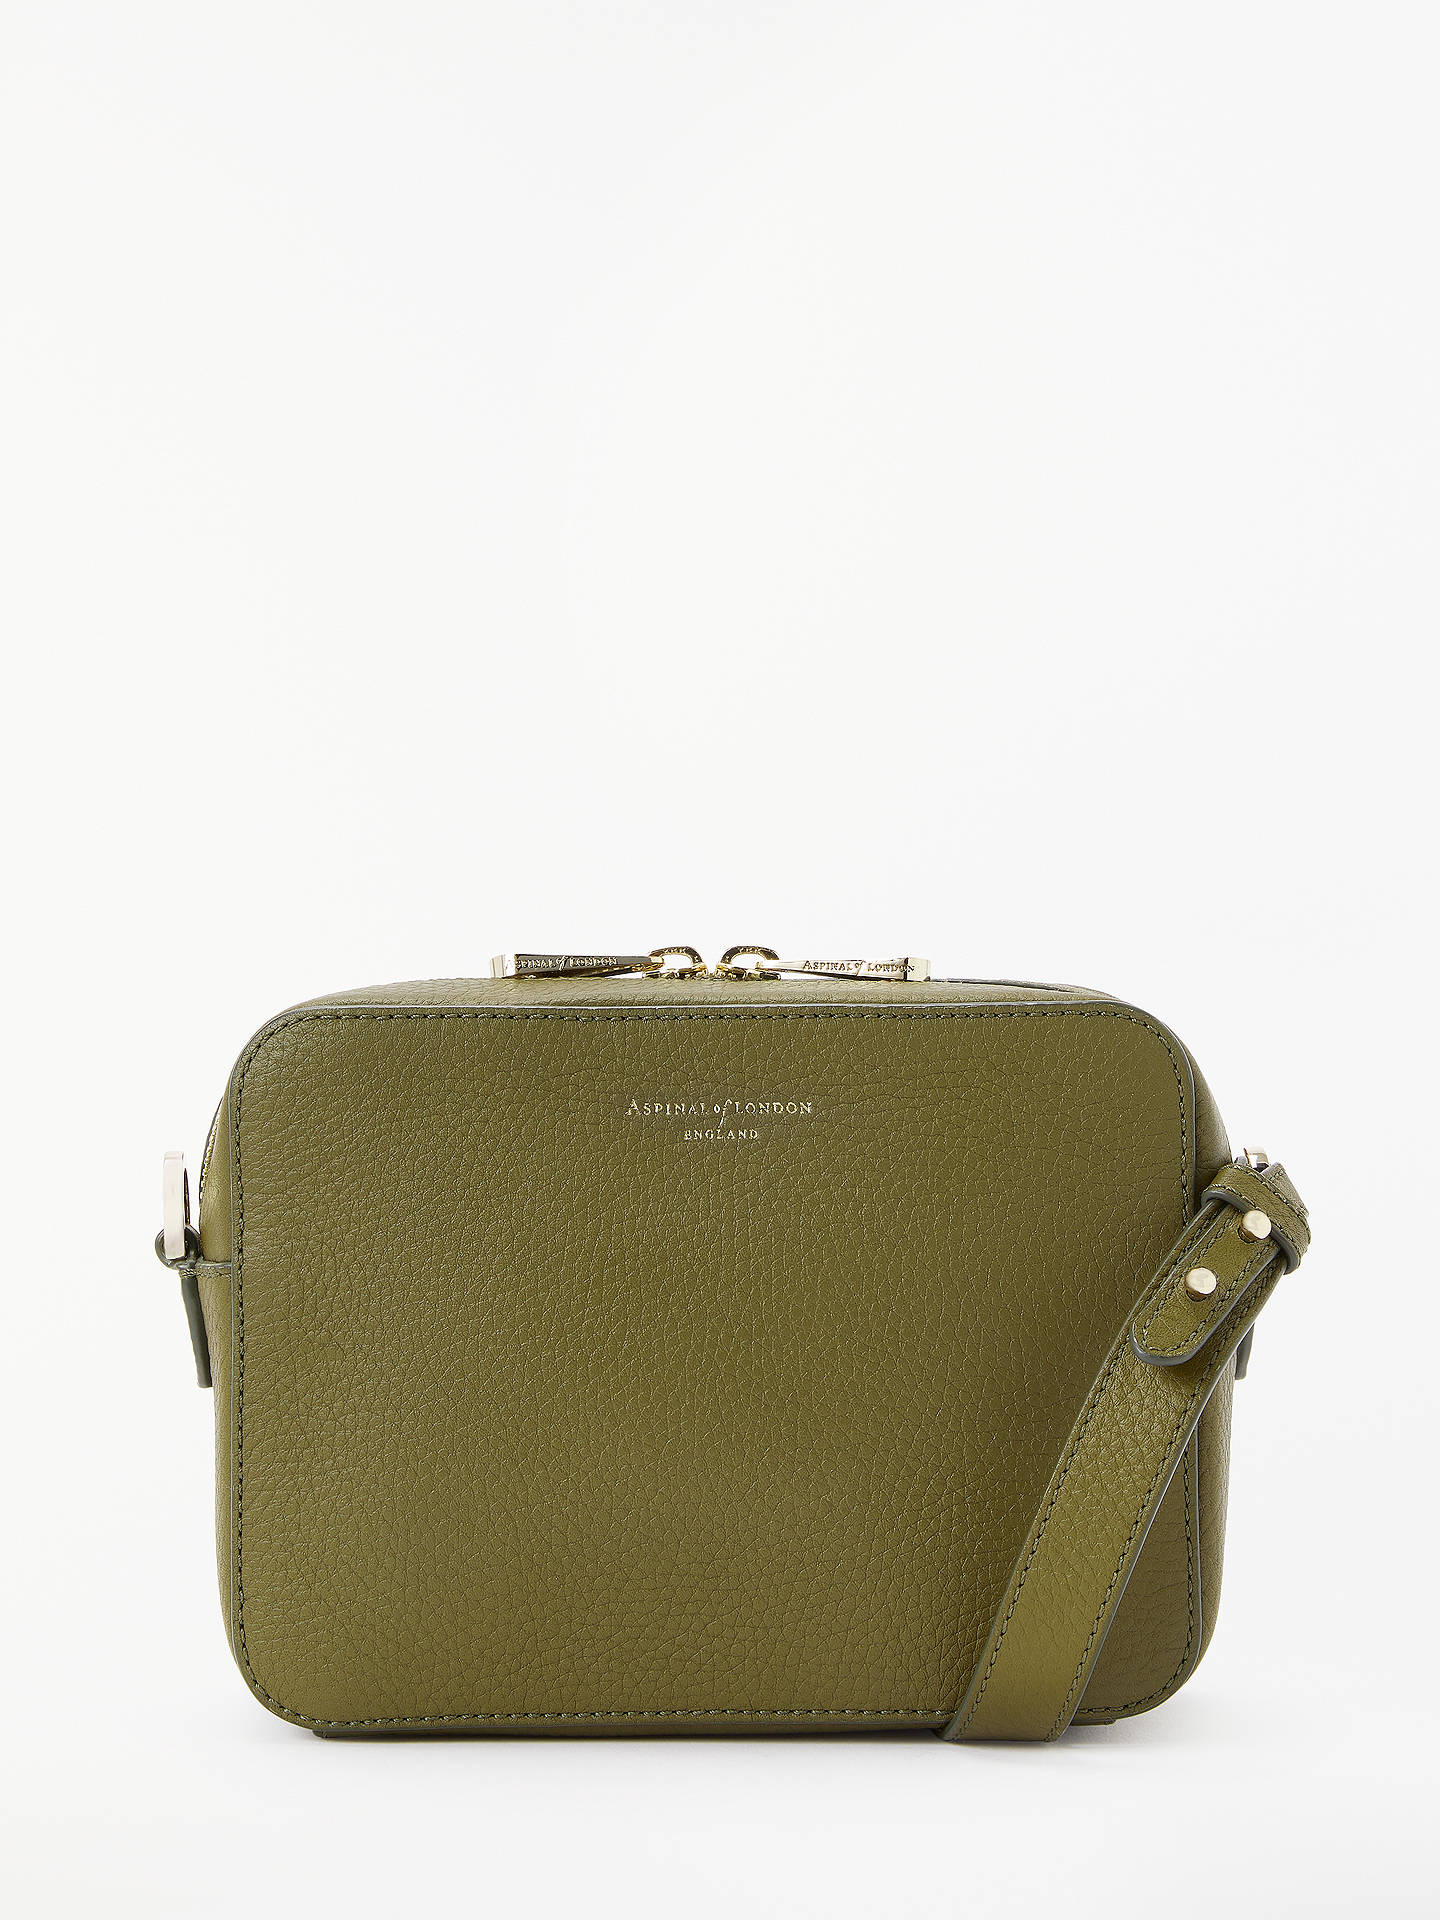 0742dd591bf4 Aspinal of London Blogger Leather Cross Body Bag, Oline